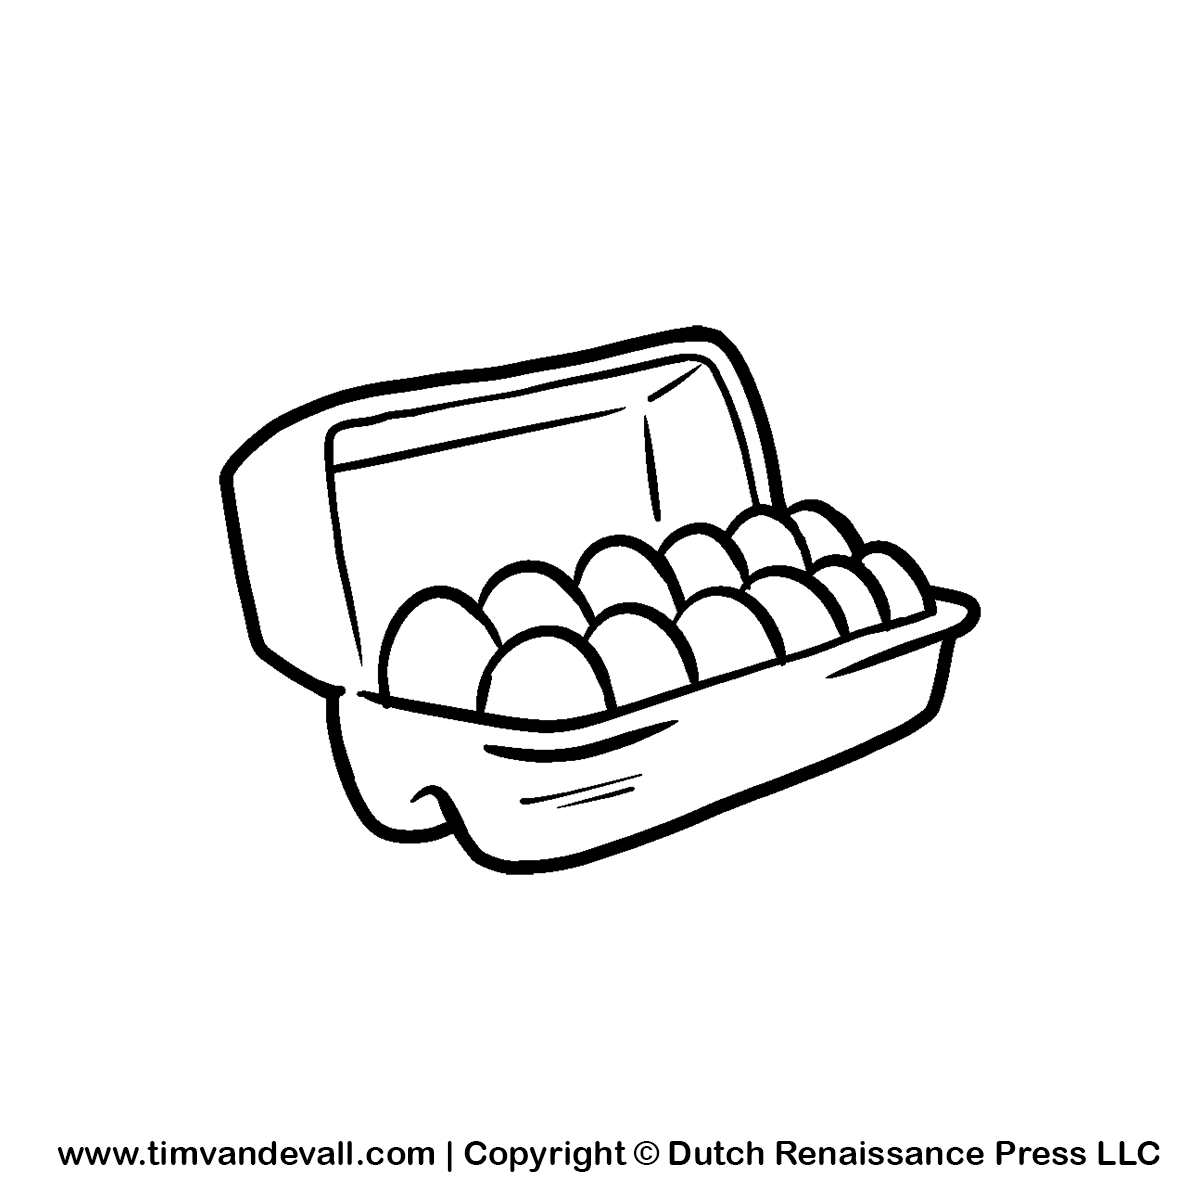 Eggs clipart black and white 5 » Clipart Station.